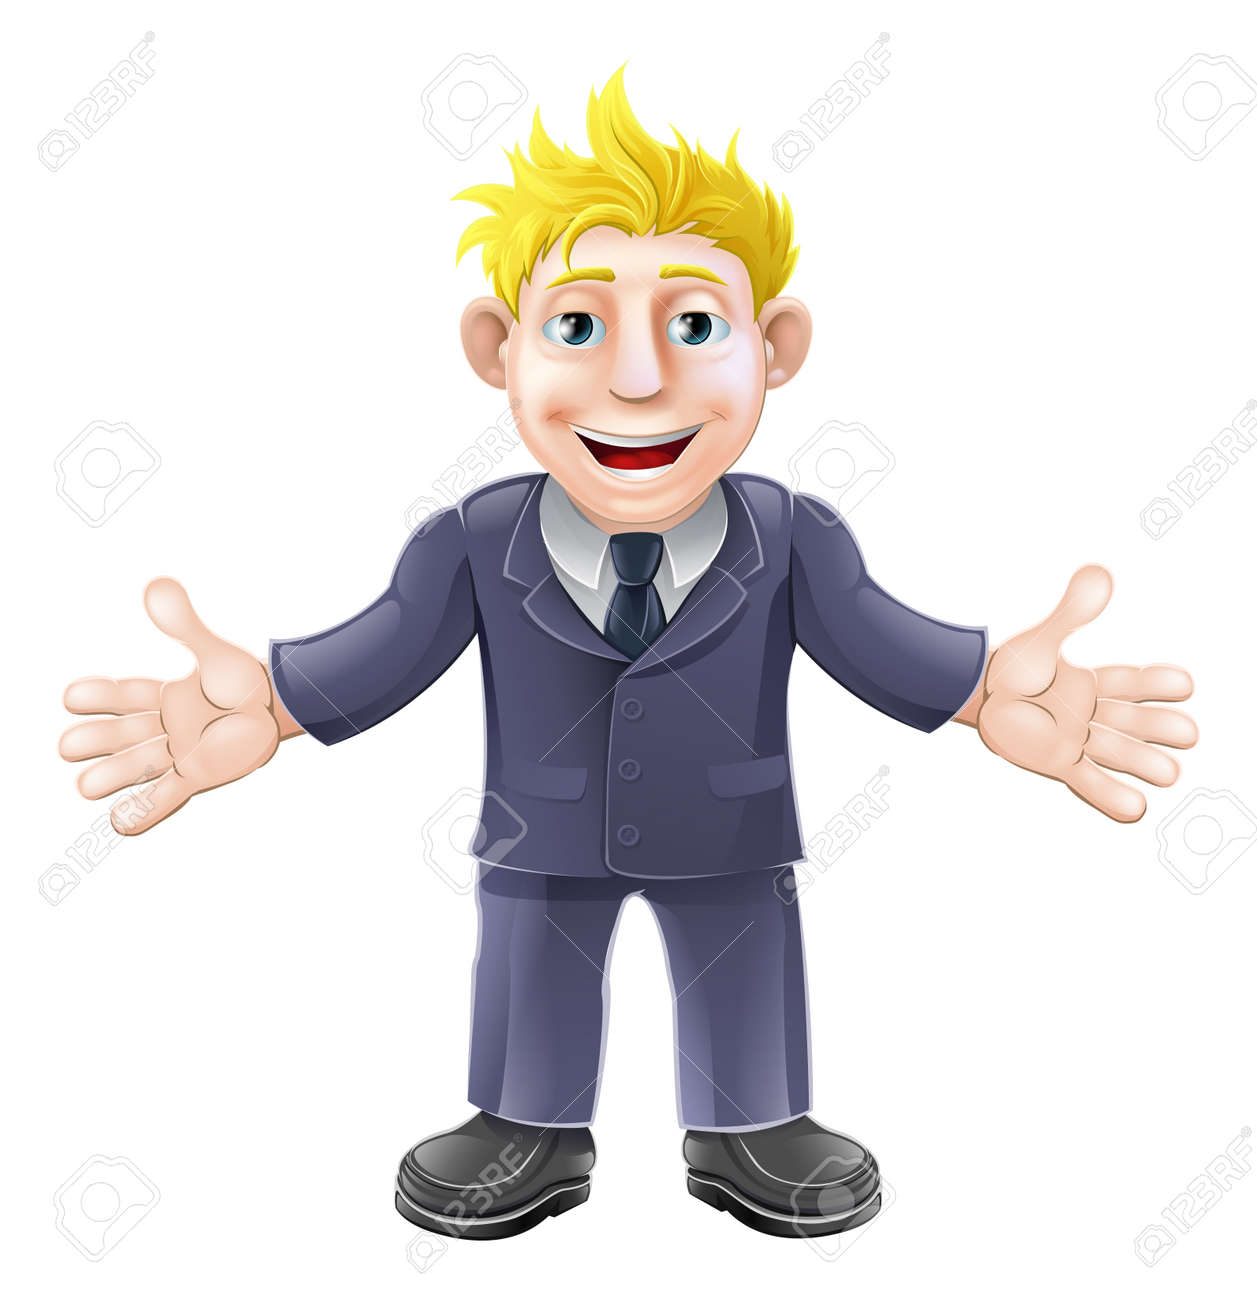 Cartoon illustration of a happy cartoon businessman in suit smiling Stock Vector - 18465926